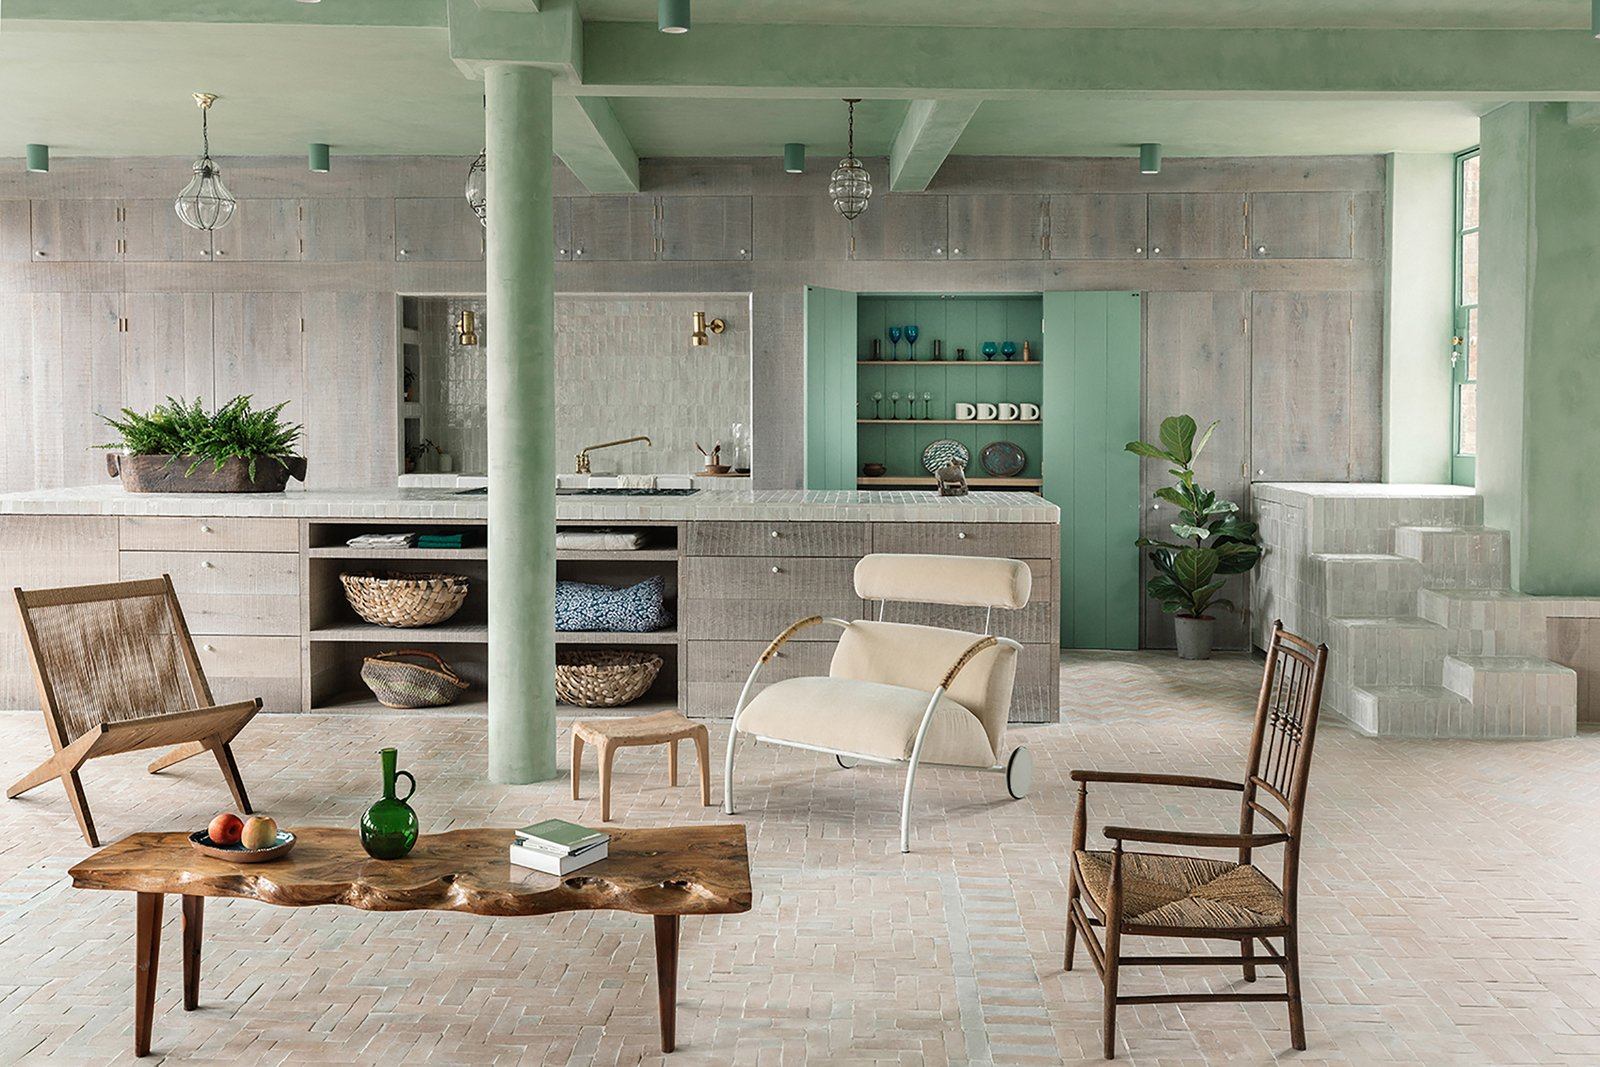 Living Room, Coffee Tables, Chair, Ceiling Lighting, and Terra-cotta Tile Floor  The kitchen island has been custom-made. The distinctive Zyklus lounger is by Peter Maly.     Photo 2 of 12 in Grab This Newly Renovated, Green-Hued Abode For $4.2M